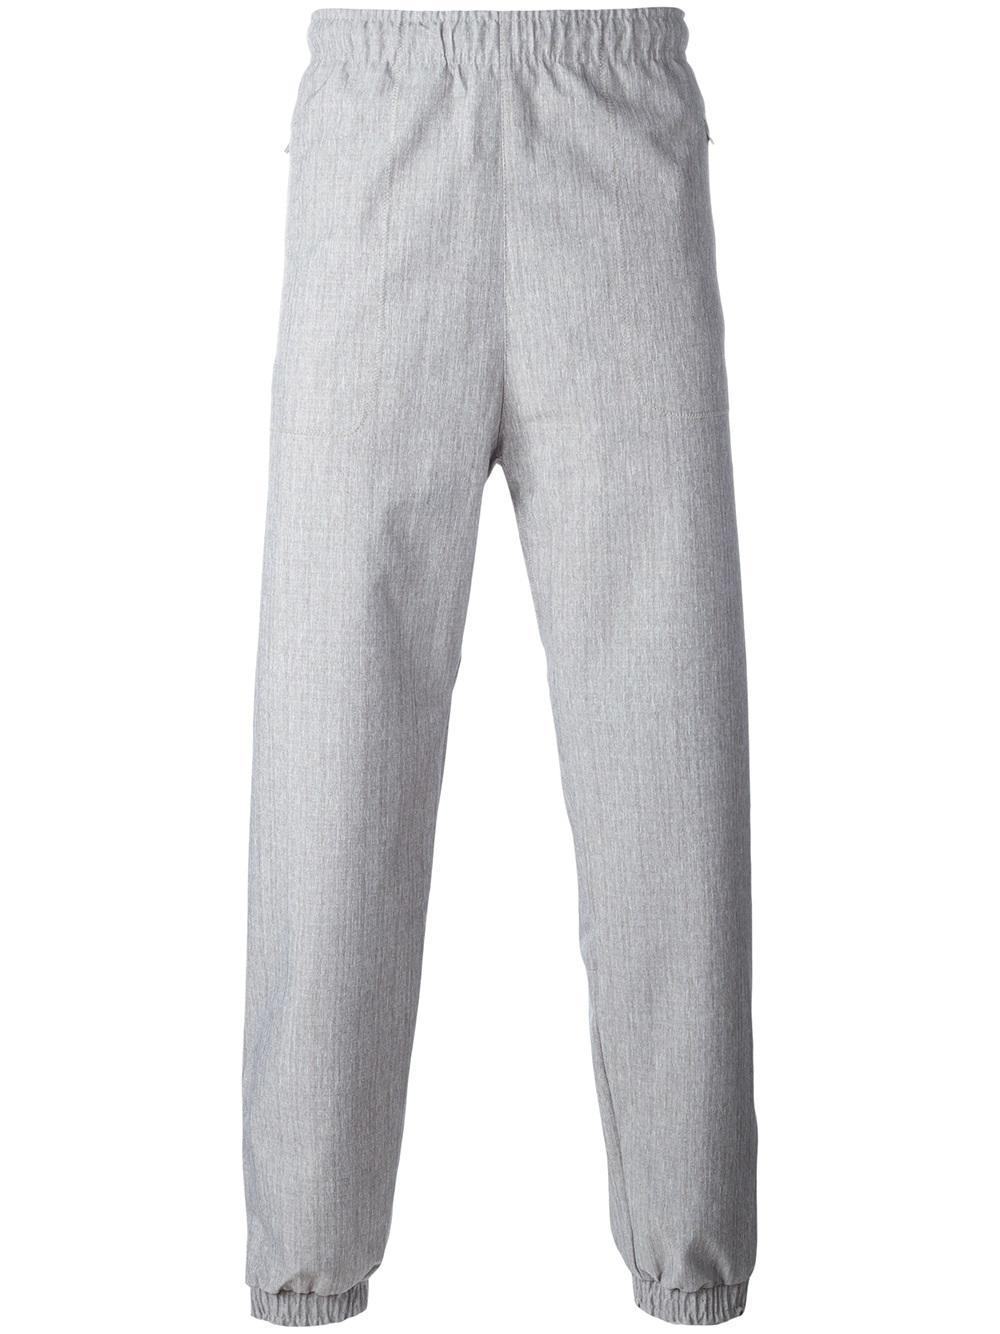 lyst adidas originals wind track pants in gray for men